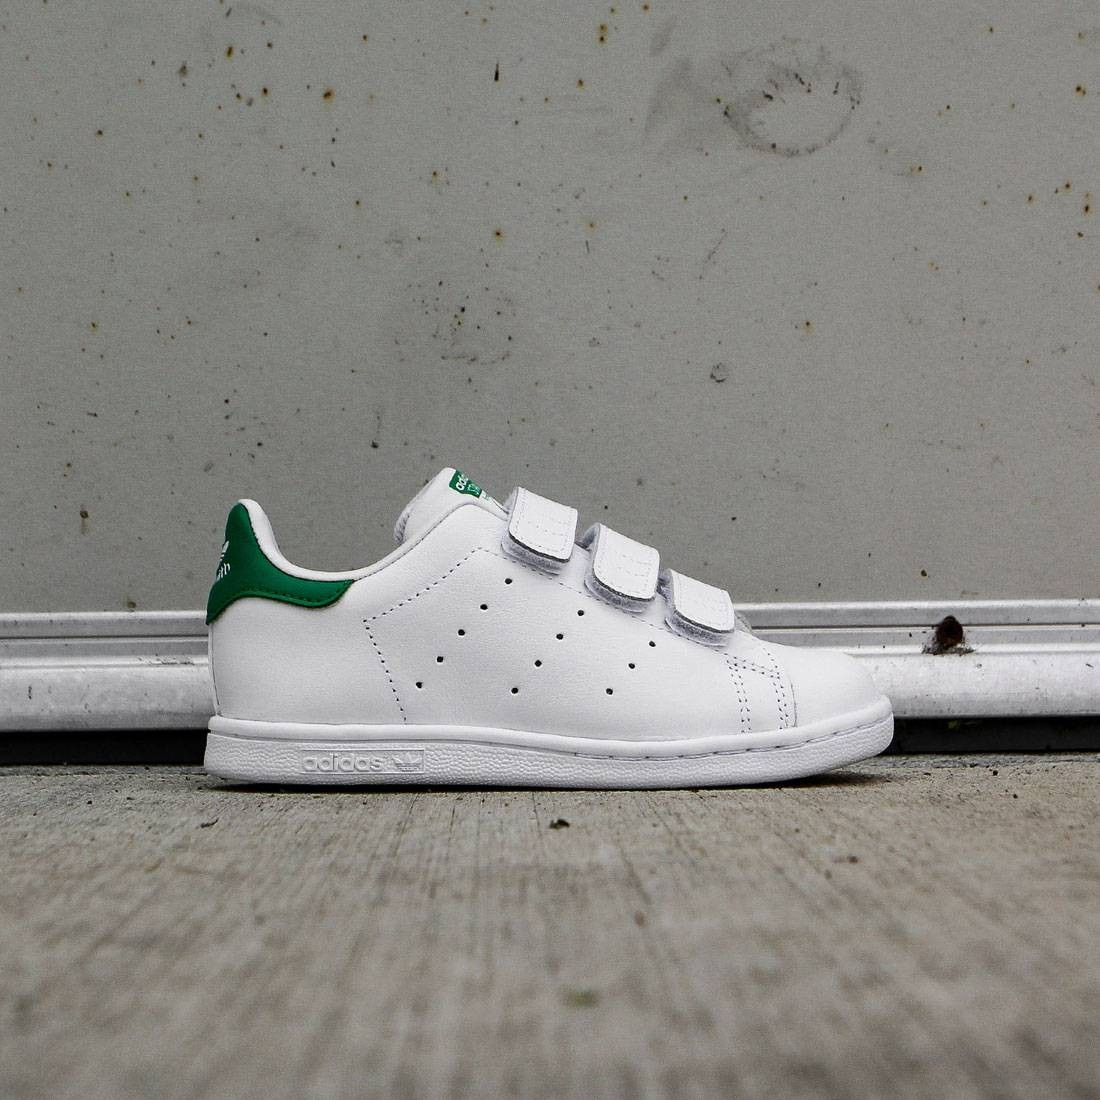 【海外限定】アディダス 靴 スニーカー 【 ADIDAS TODDLERS STAN SMITH WHITE FTWWHT GREEN 】